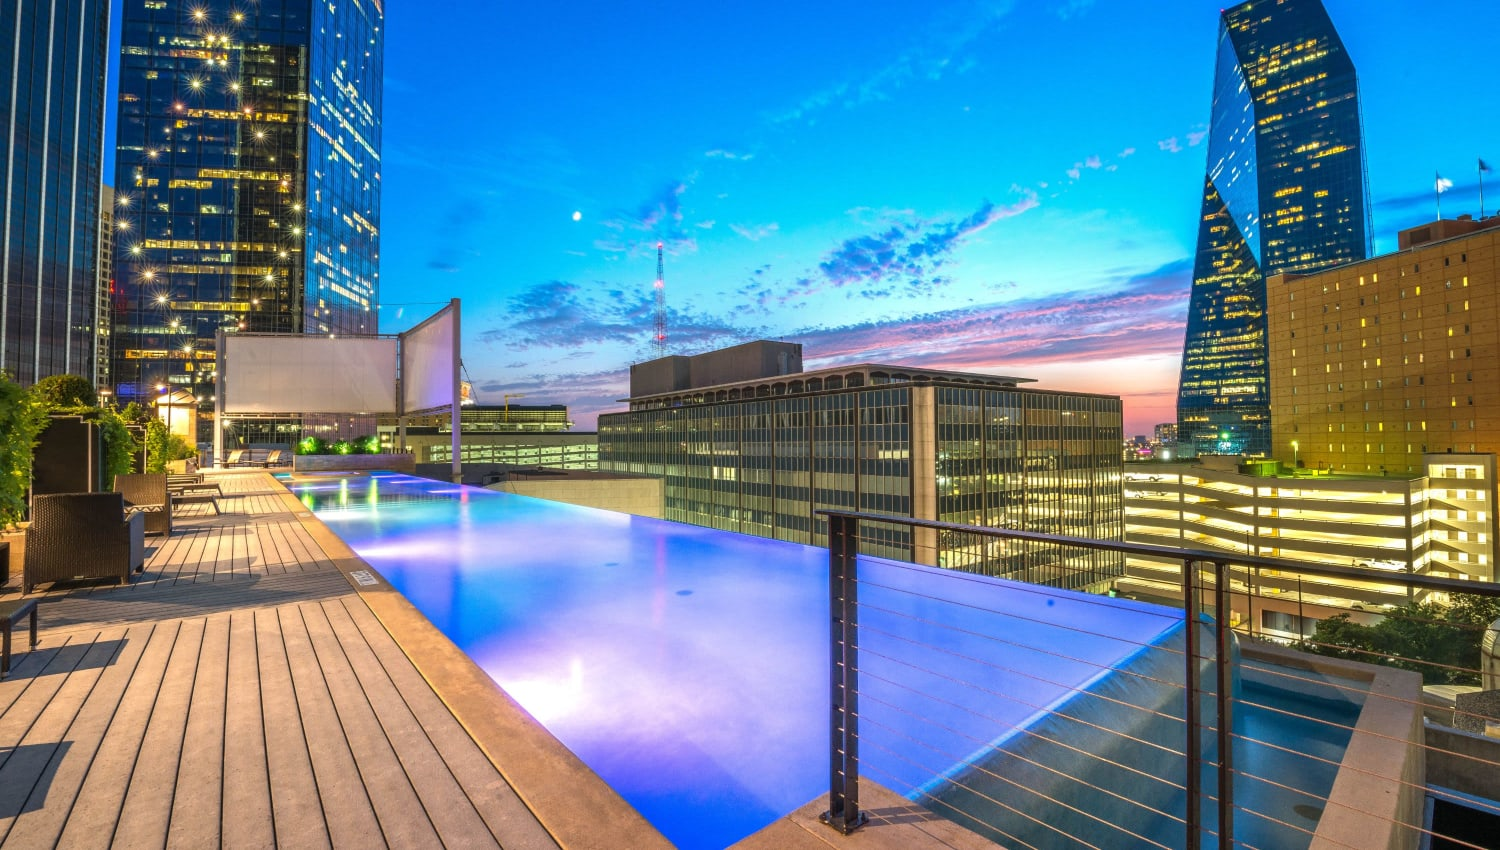 Rooftop infinity pool at Mosaic Dallas in Dallas, Texas